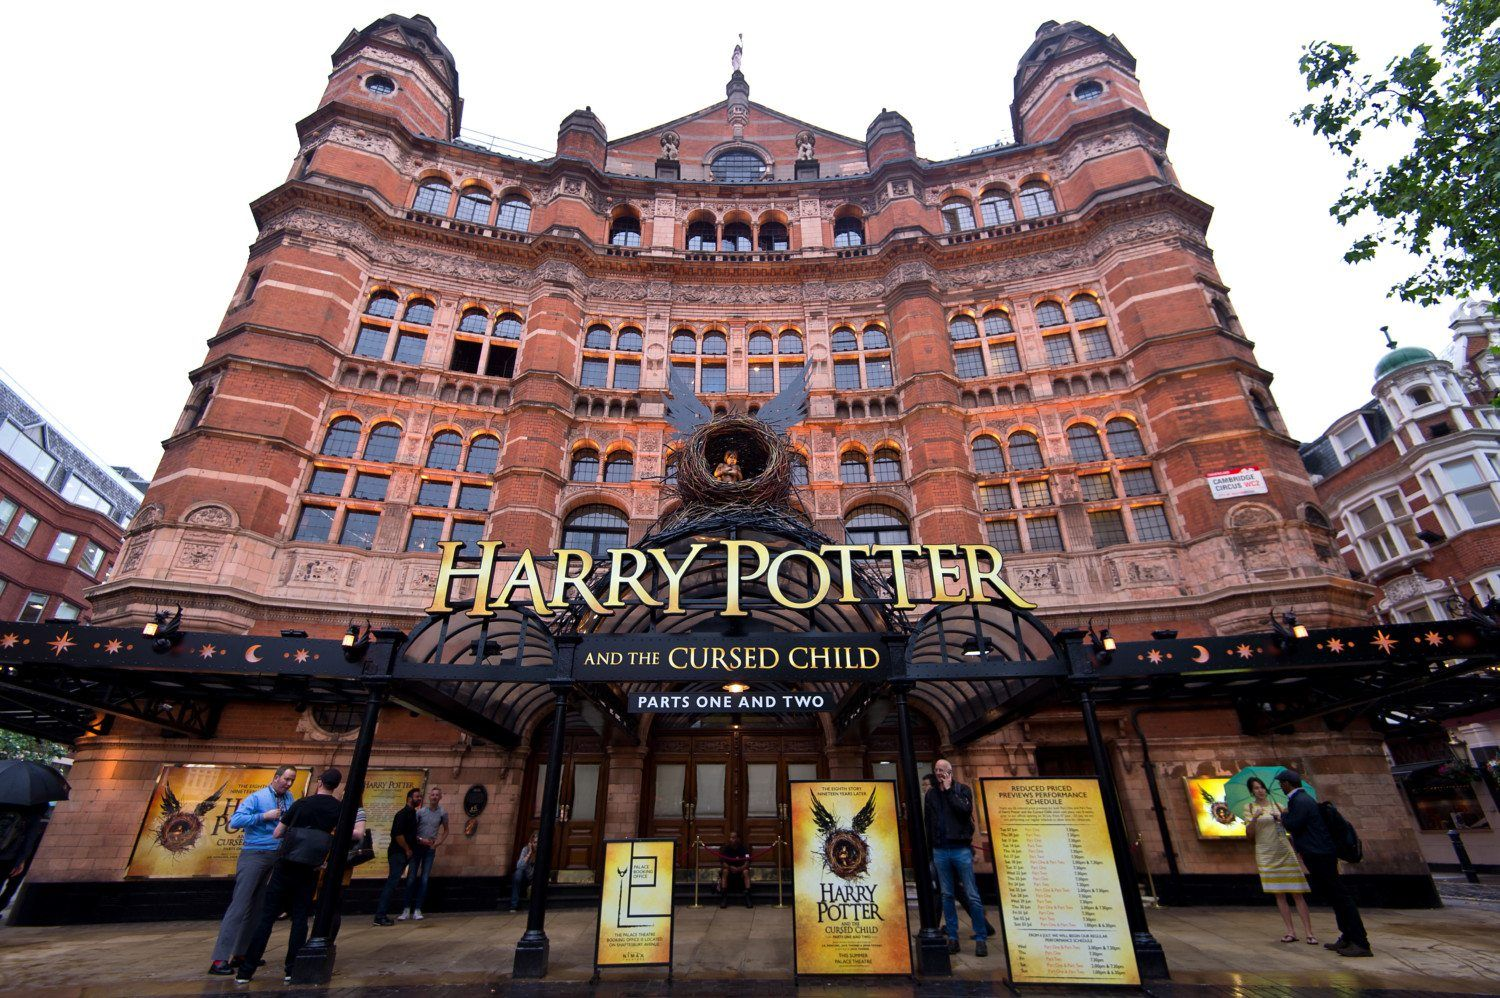 Harry Potter And The Cursed Child Is Opening On Broadway Next Year Harry Potter Broadway Broadway London